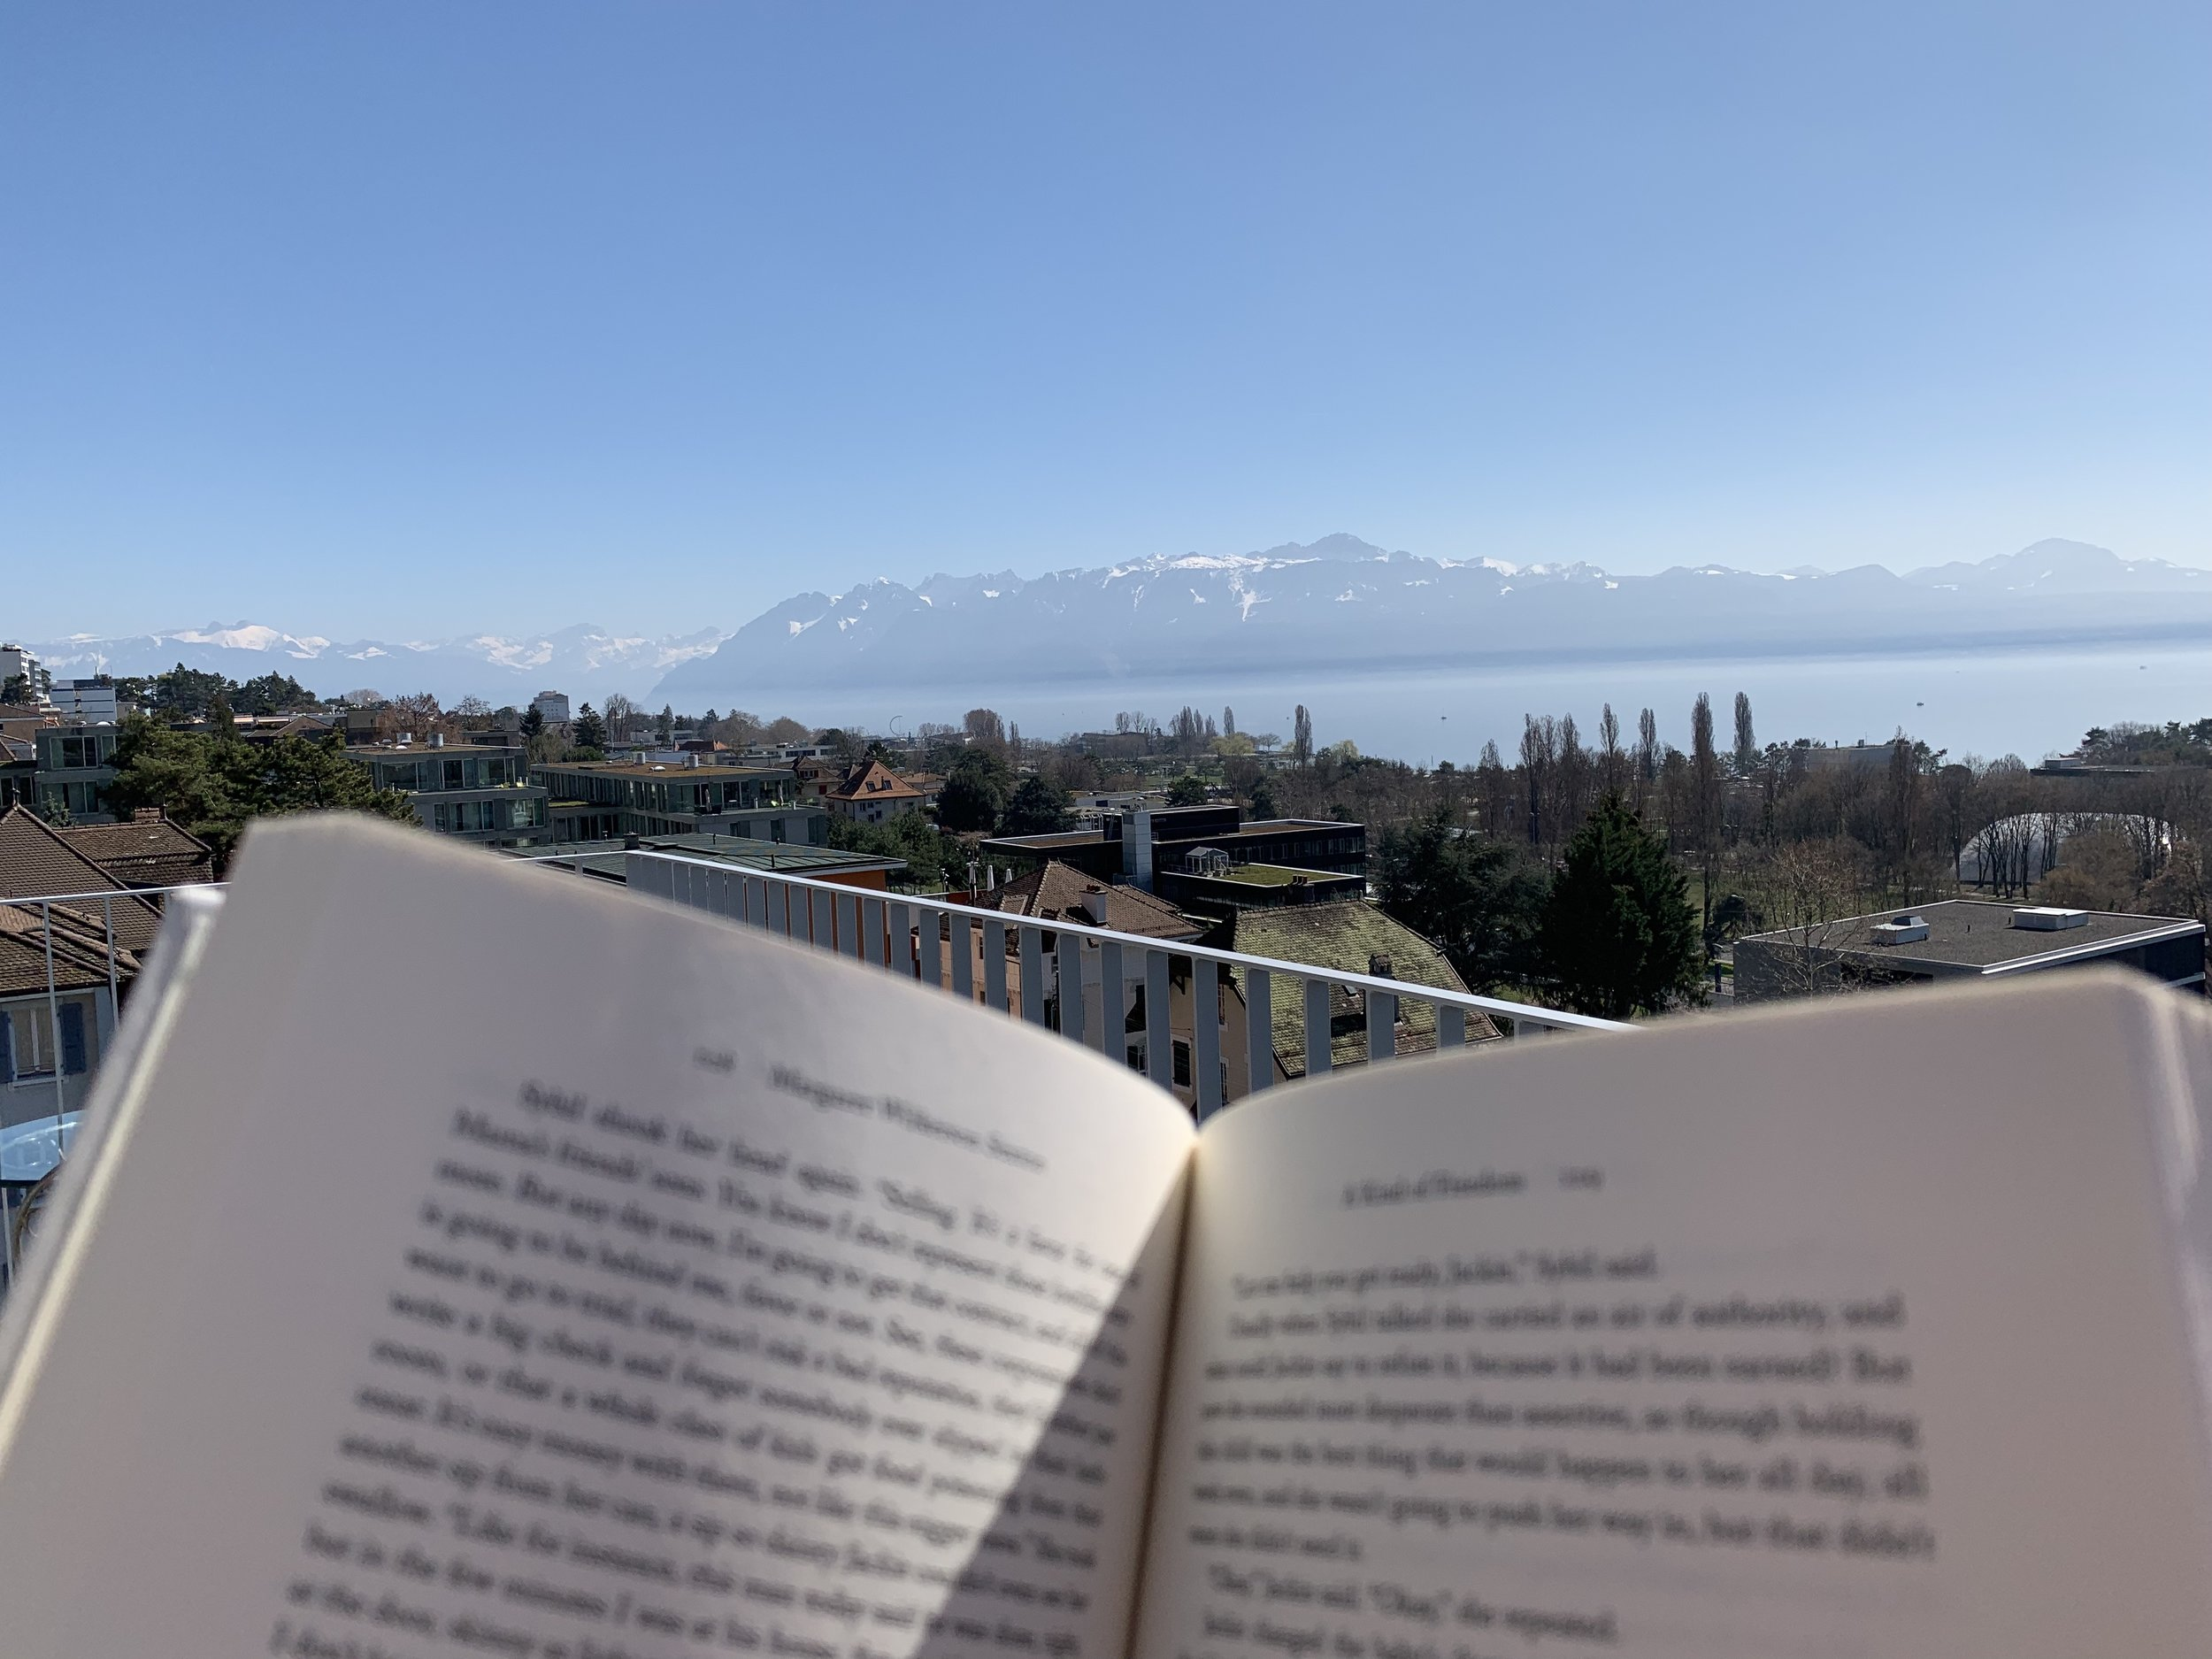 Reading on the terrace. Lausanne, Switzerland, March 2019.